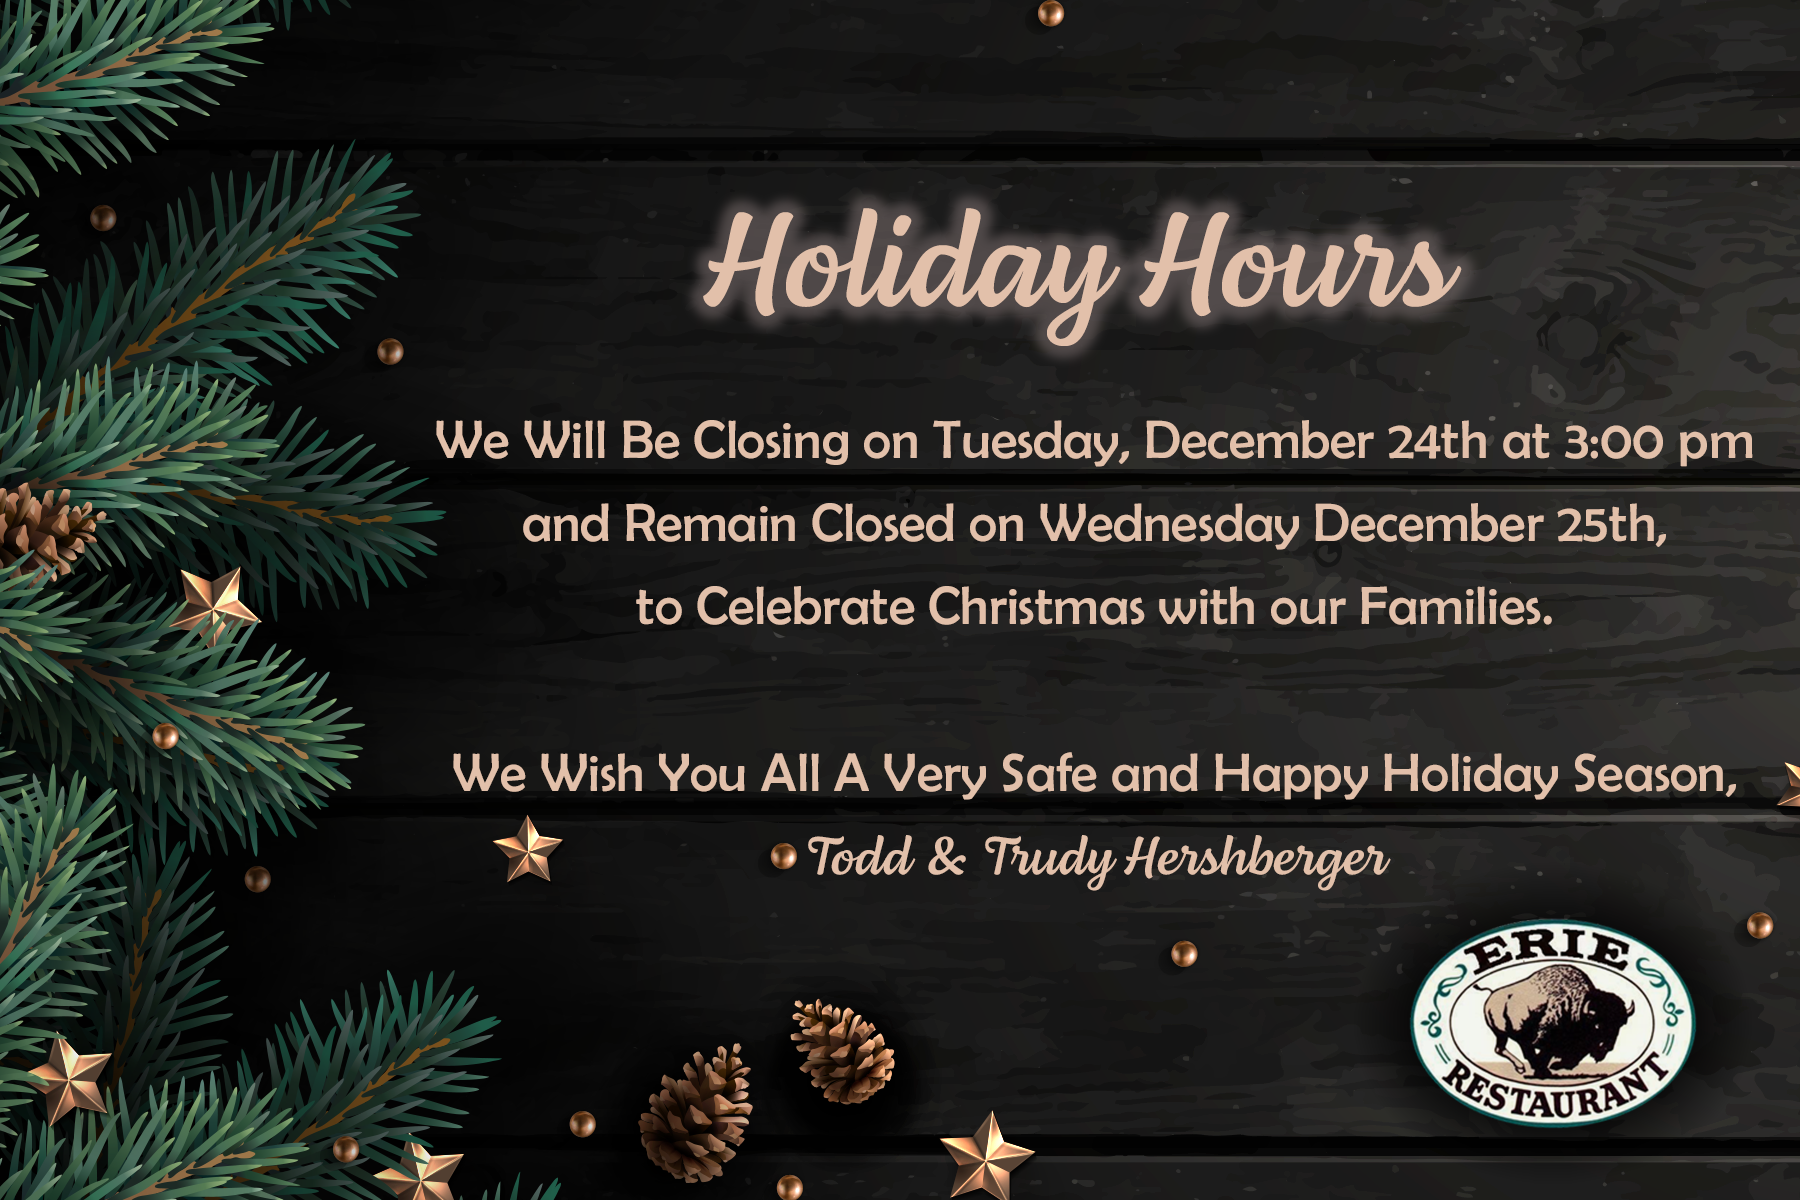 We will be closing on Tuesday December 24th at 3:00 pm and remain closed on Wednesday December 25th to celebrate Christmas with our Families. We wish you all a very safe and happy Holiday season, Todd & Trudy Hershberger.